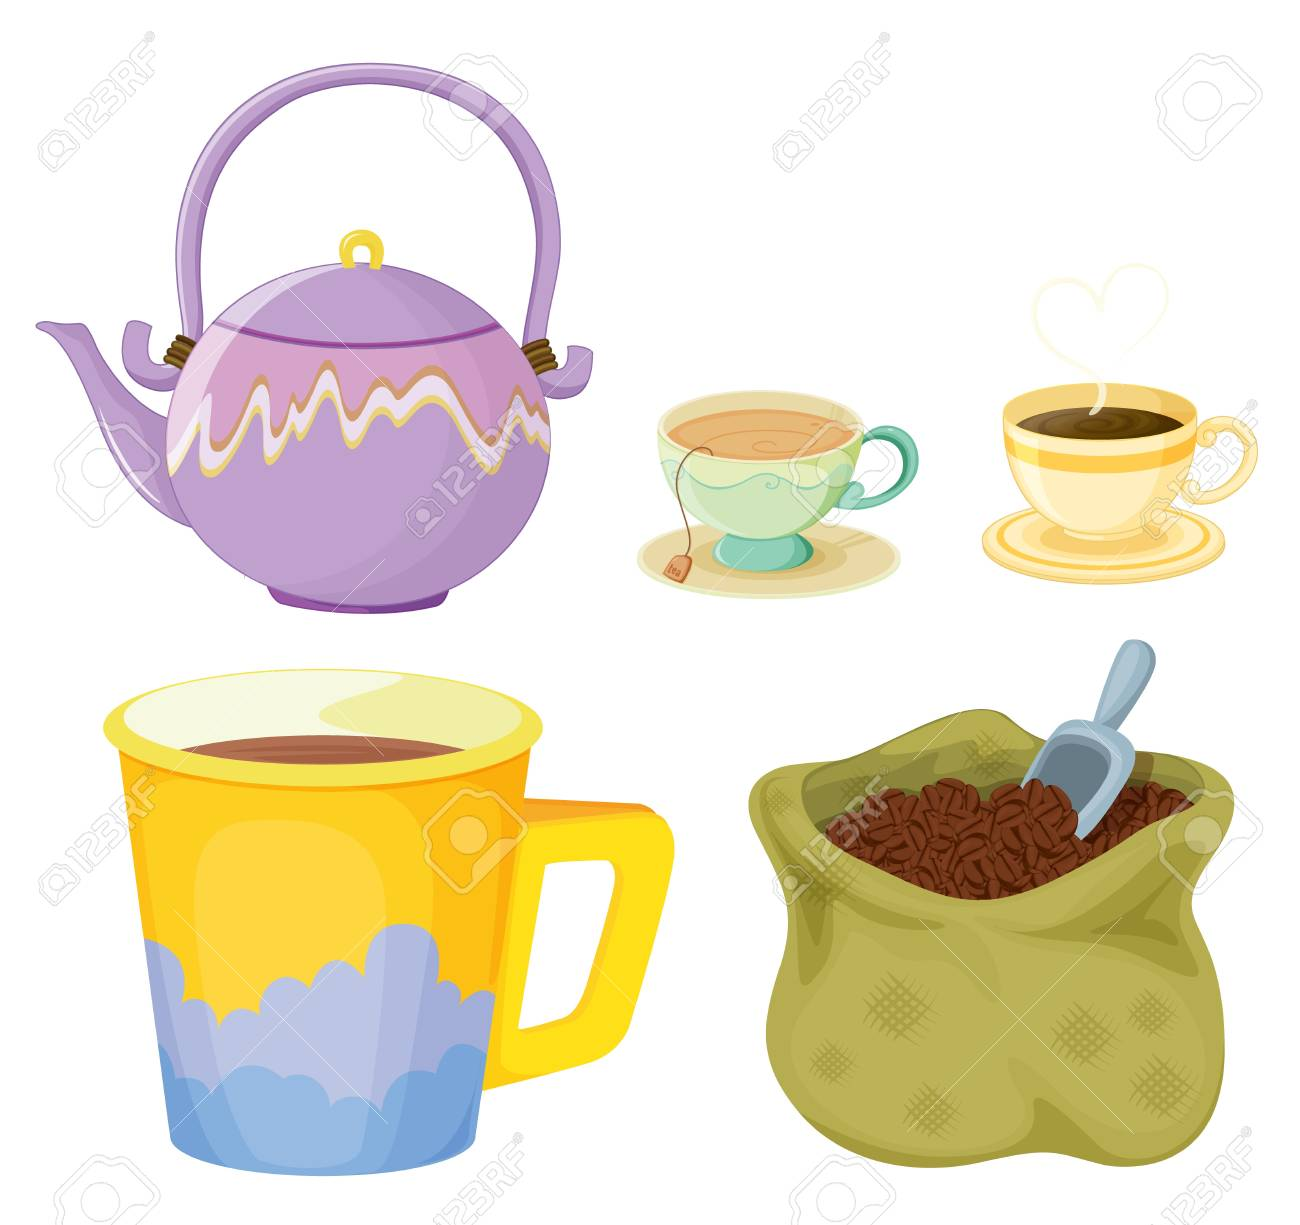 Illustration of tea and coffee items Stock Vector - 13930769